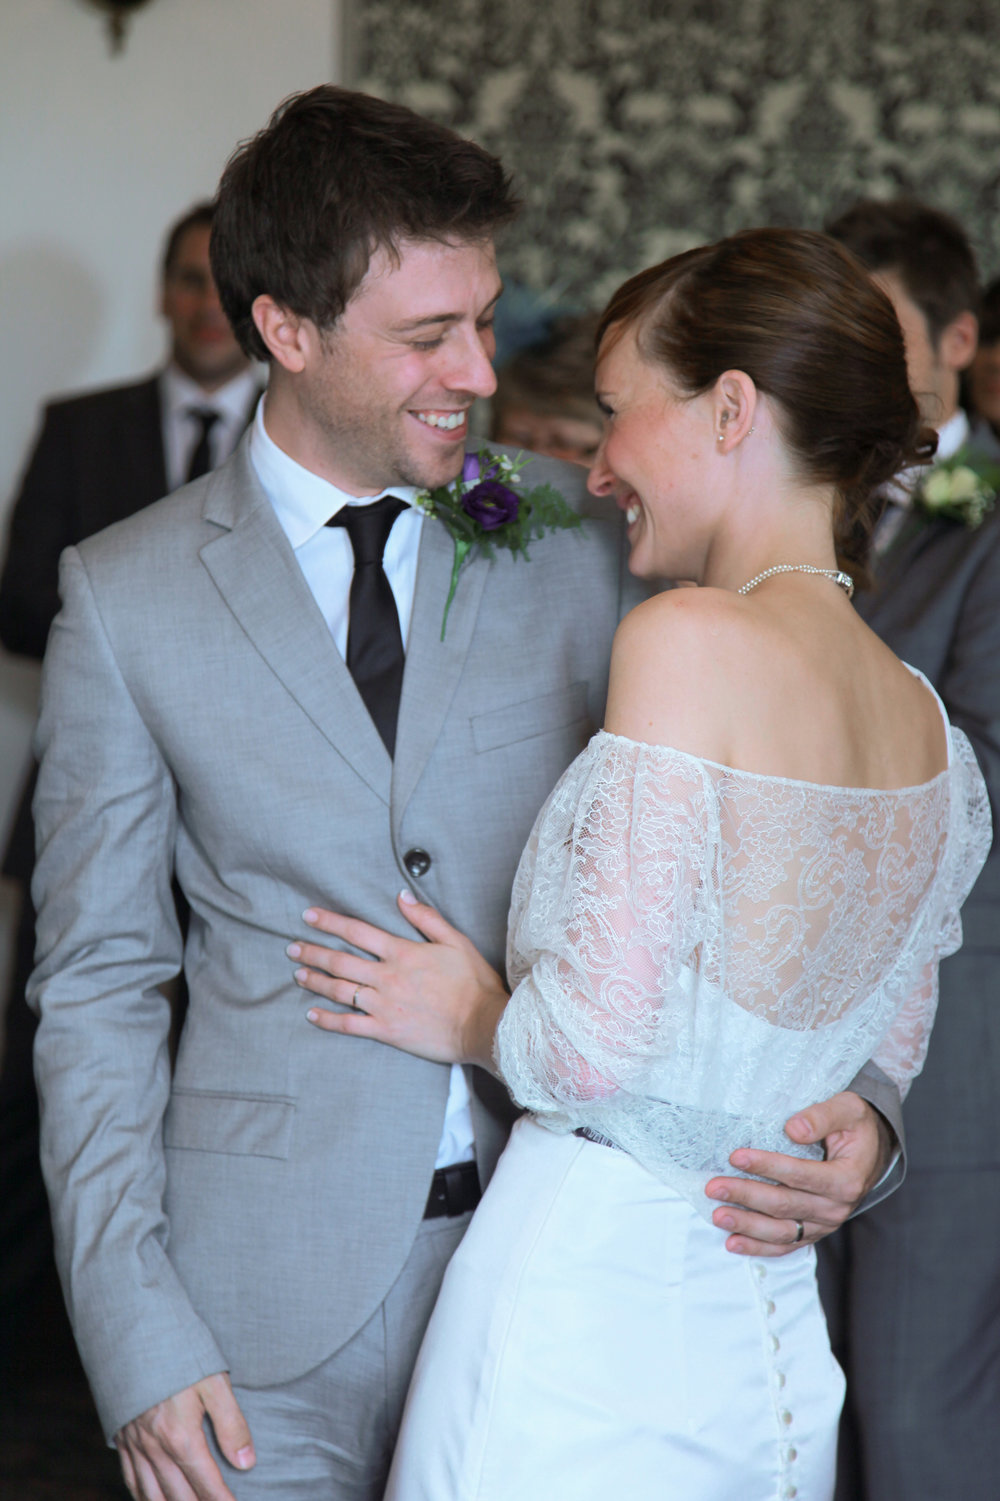 Alexandra-bespoke-wedding-dress-Kate-Beaumont-8.jpg